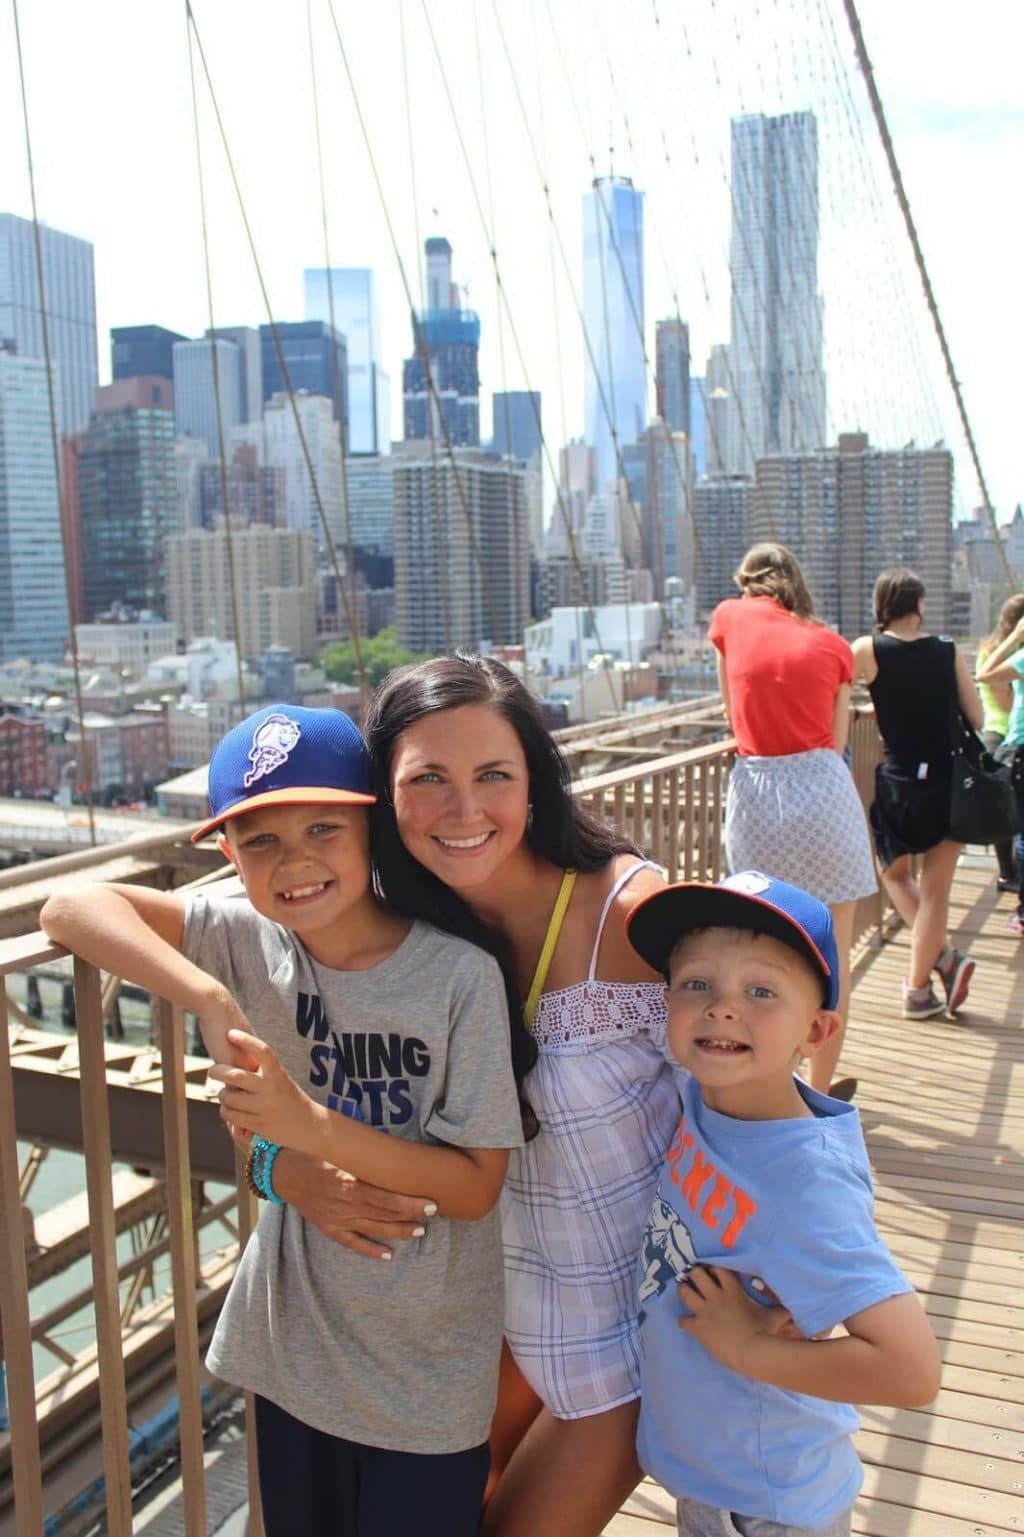 Walking the Brooklyn Bridge NYC with kids